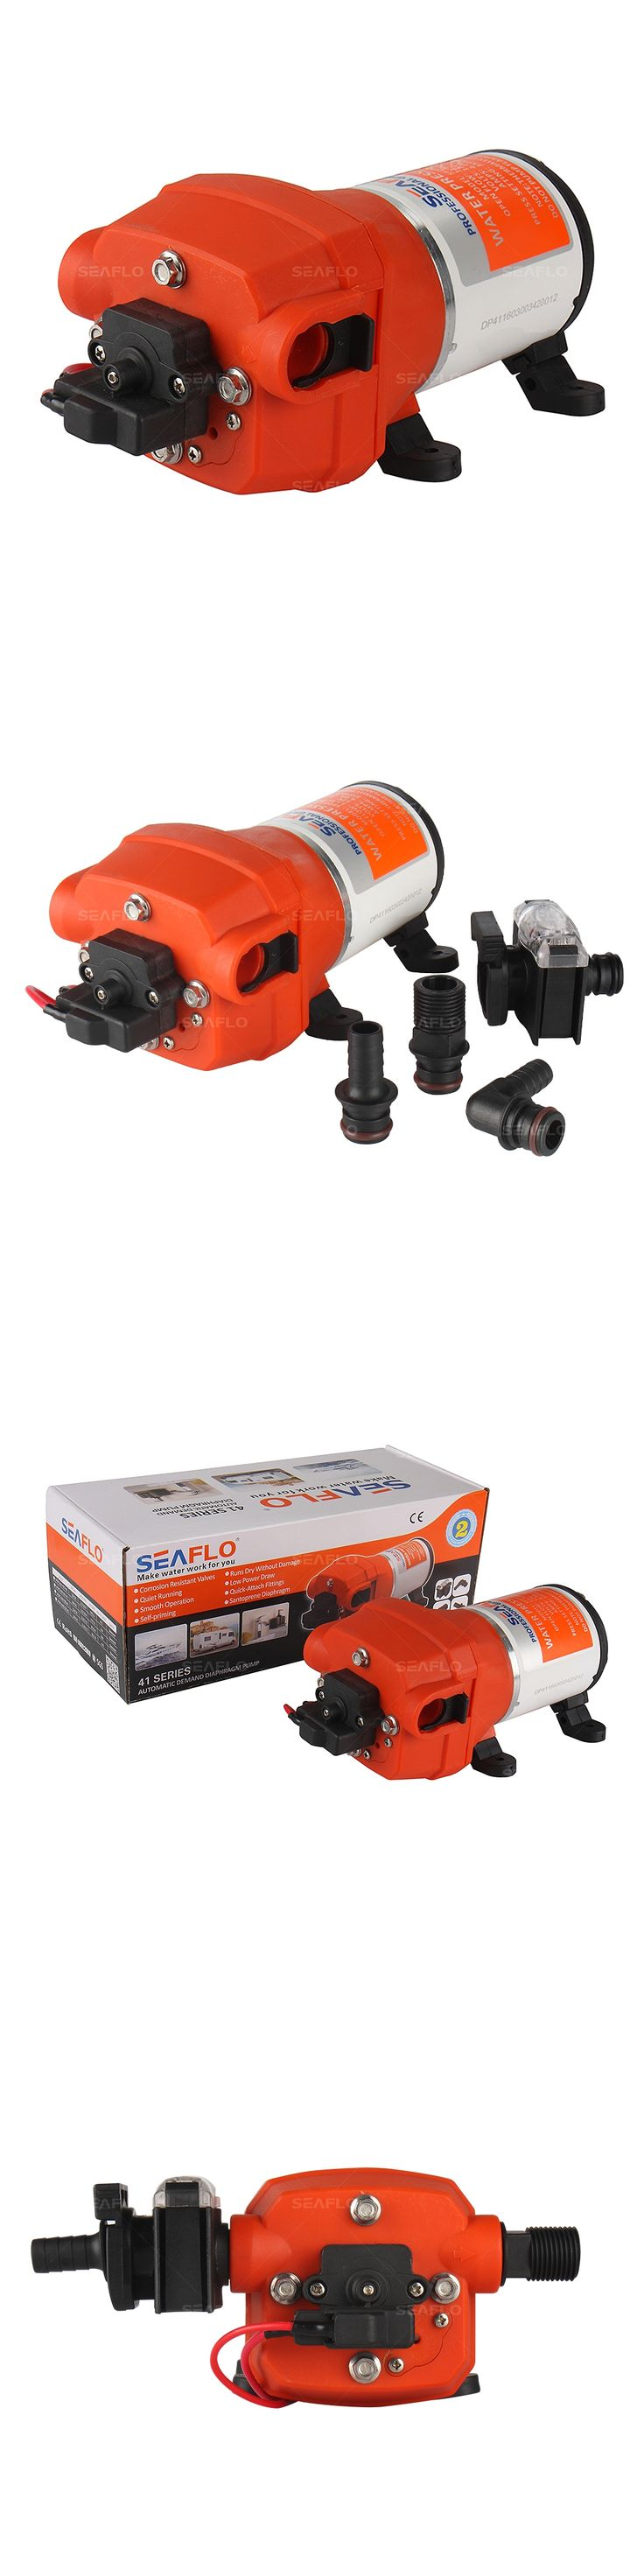 SEAFLO 12v Electric Intermittent Diaphragm Pump 12 Volts DC 3.3 GPM 12.5 LPM Marine Industrial Pumps Replace shurflo Water Pump